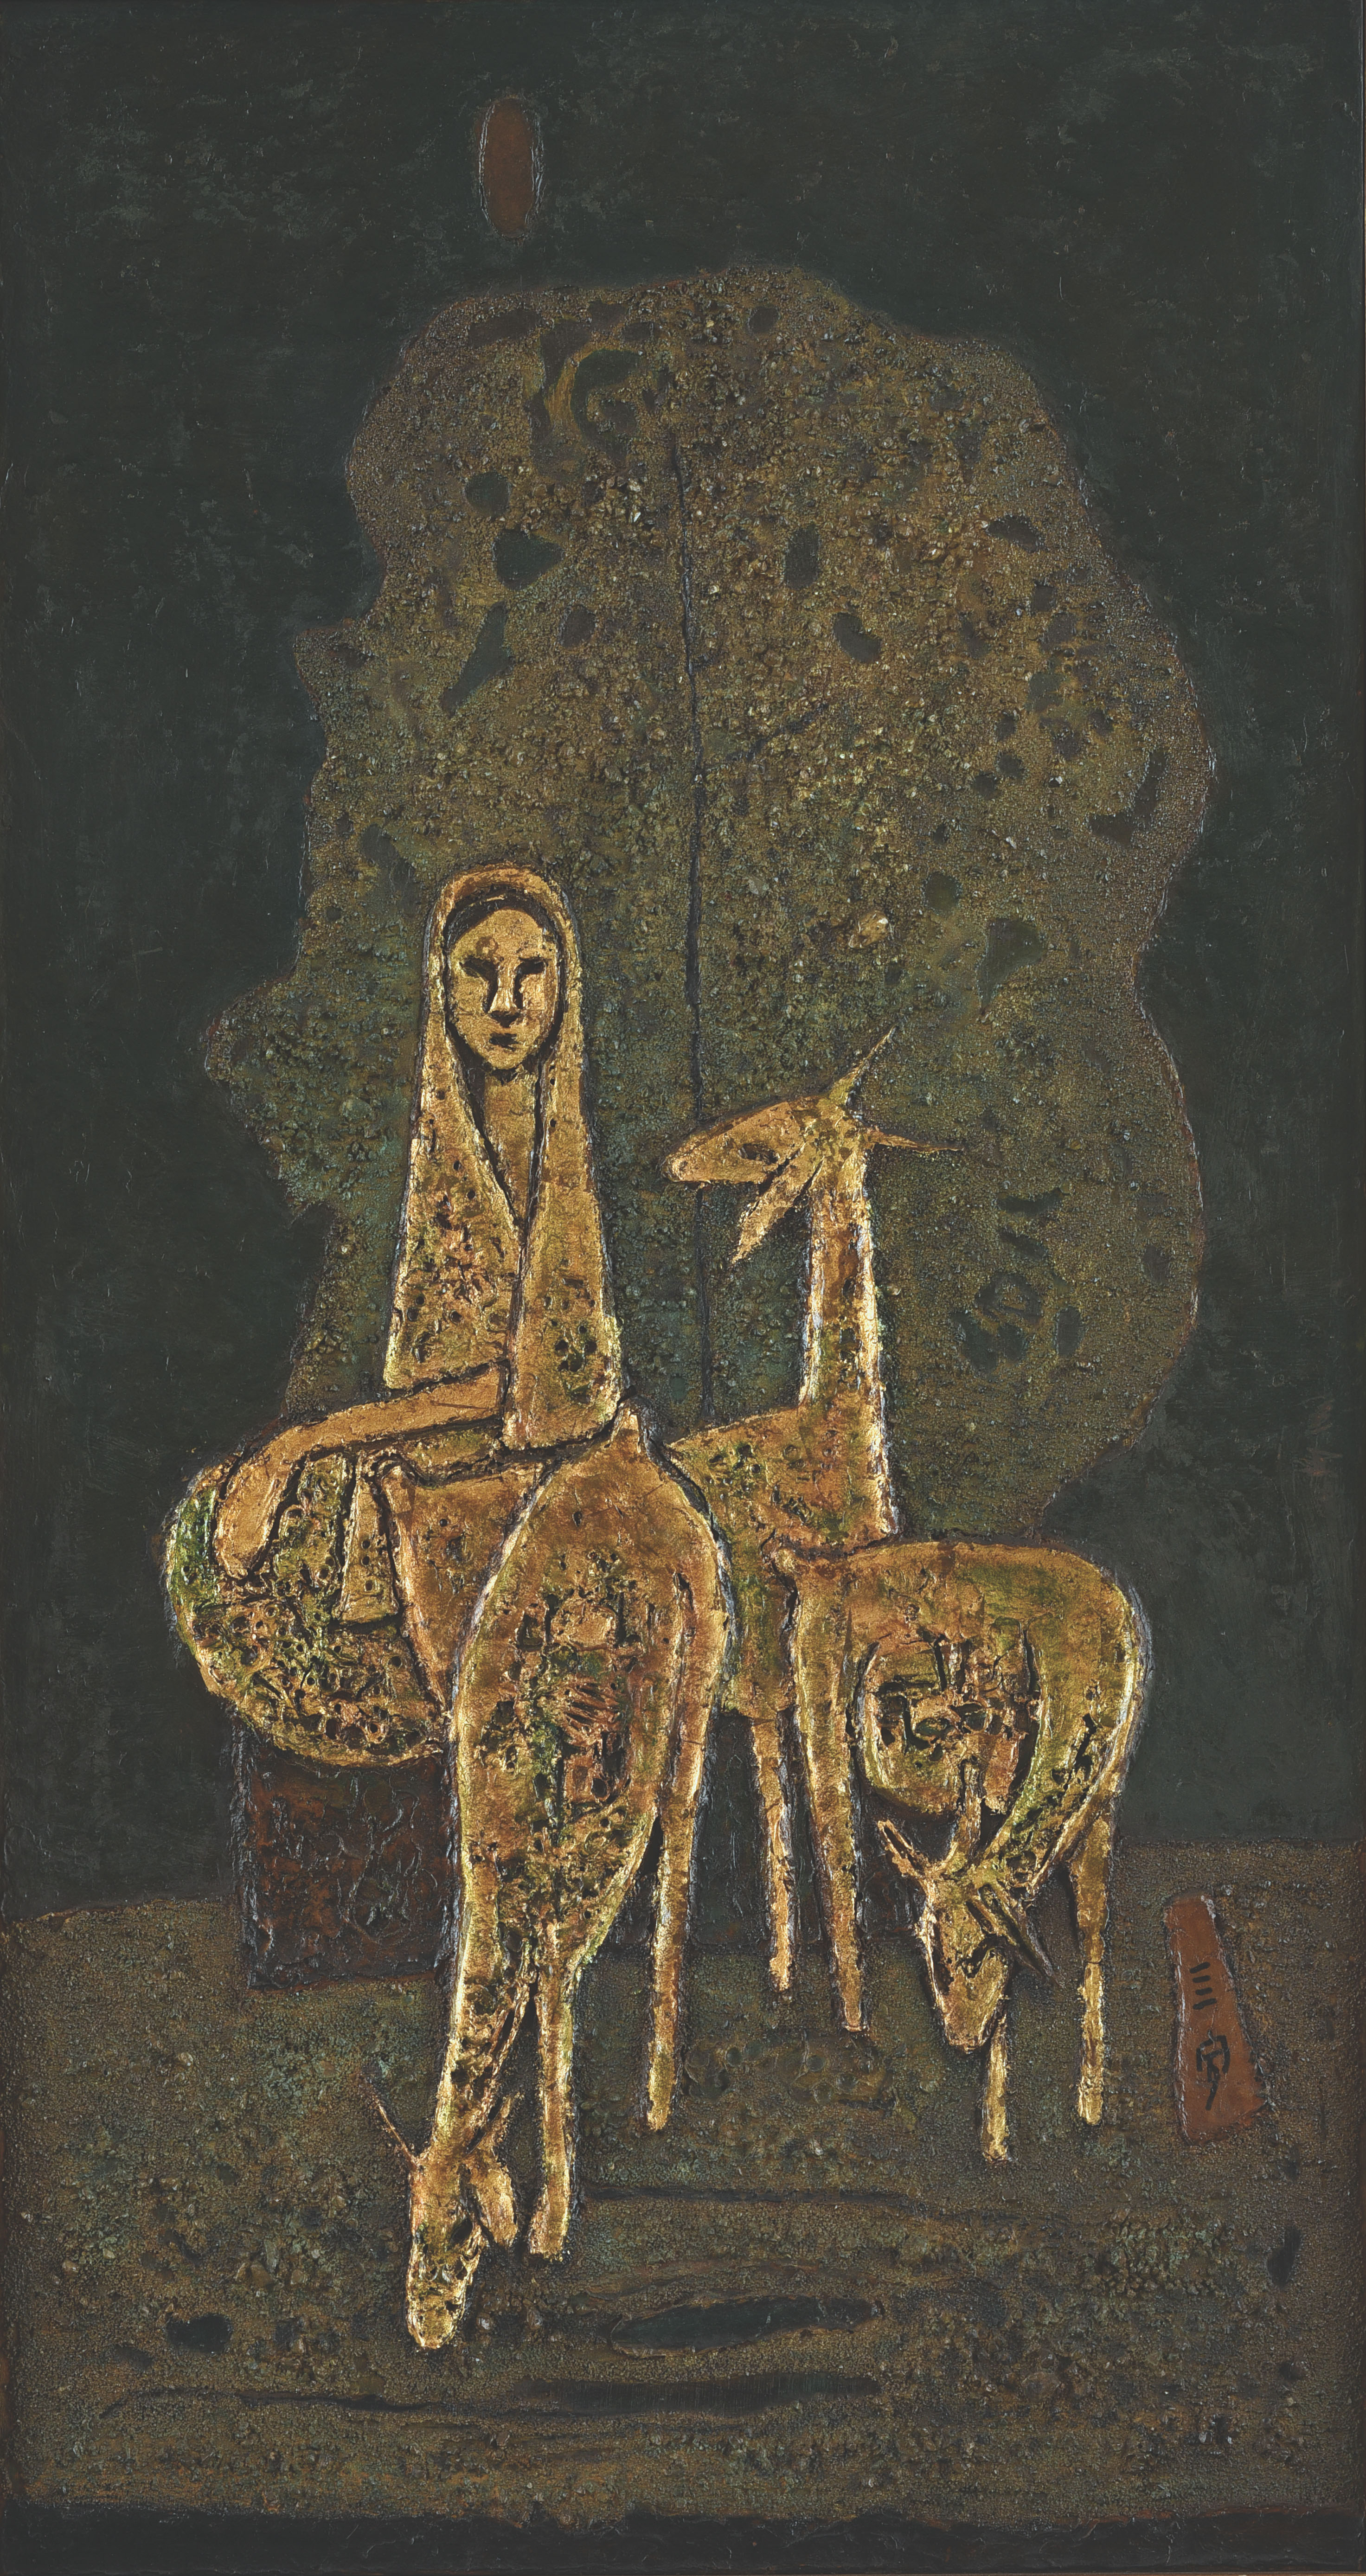 Cheong Soo Pieng, Malay Woman with Three Goats, mixed media on board, 97 x 51 cm, 1972